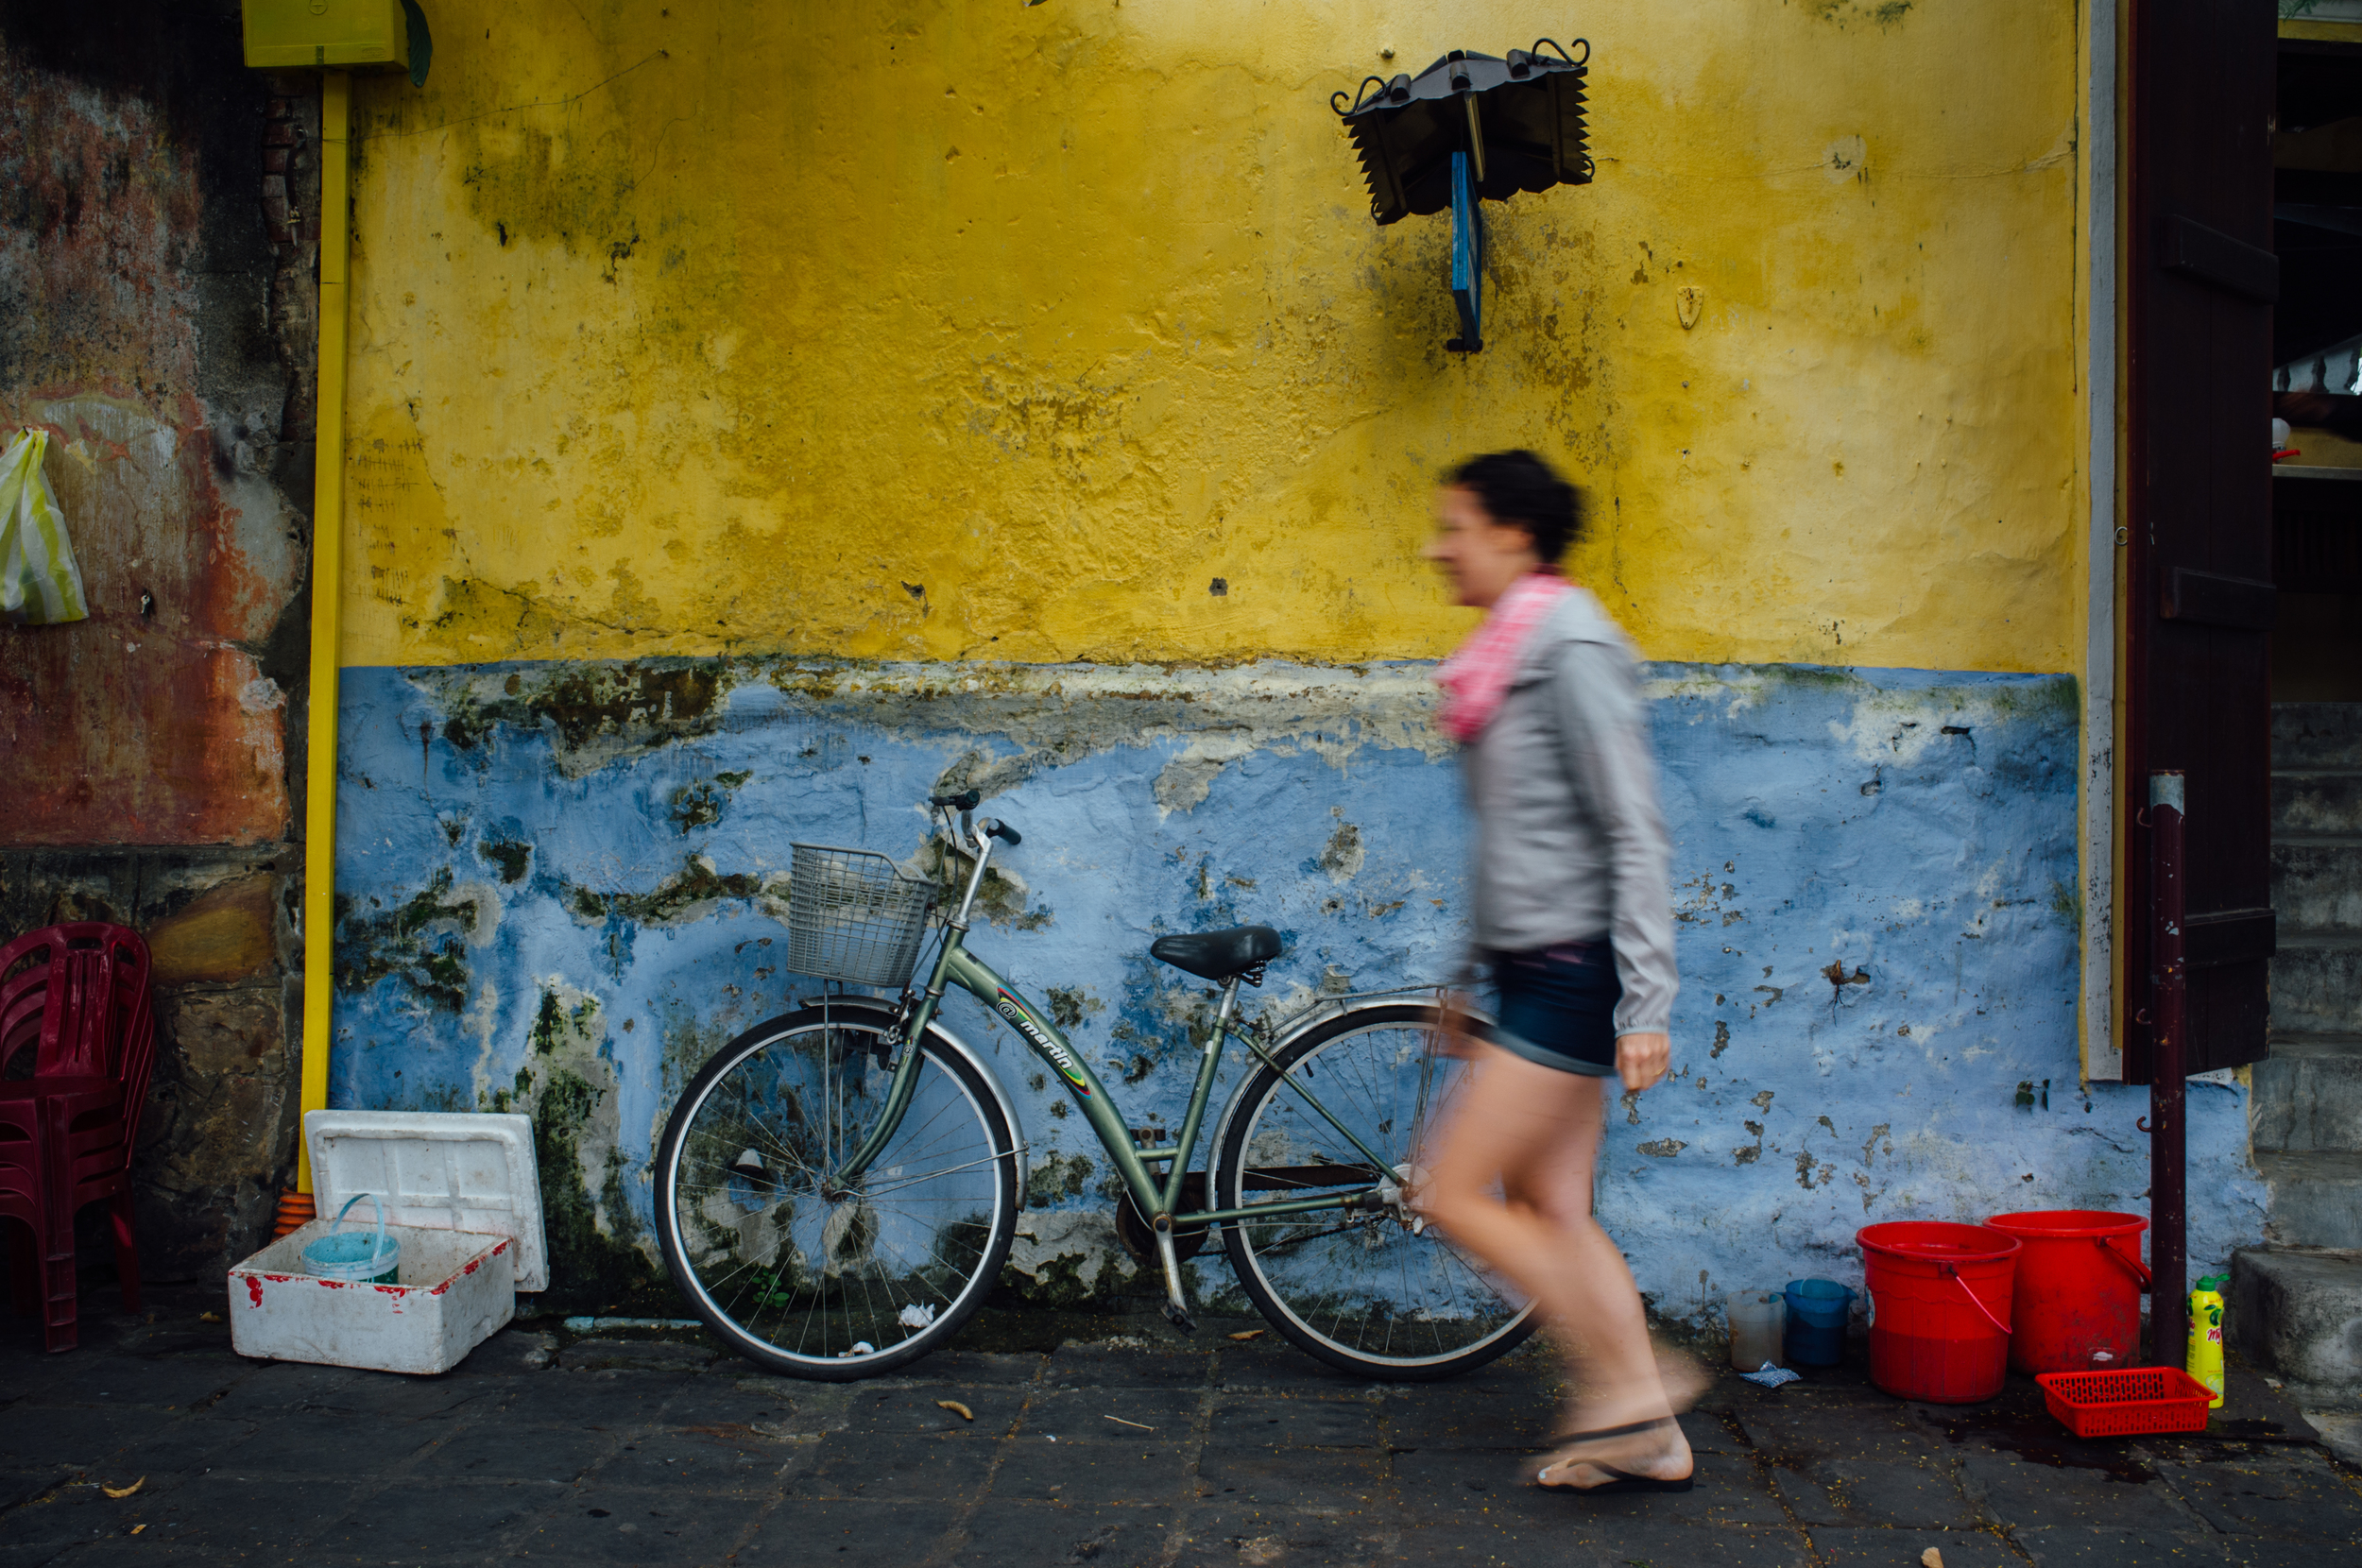 Hoi An, Central Vietnam: This light rain jacket was perfect for staying dry